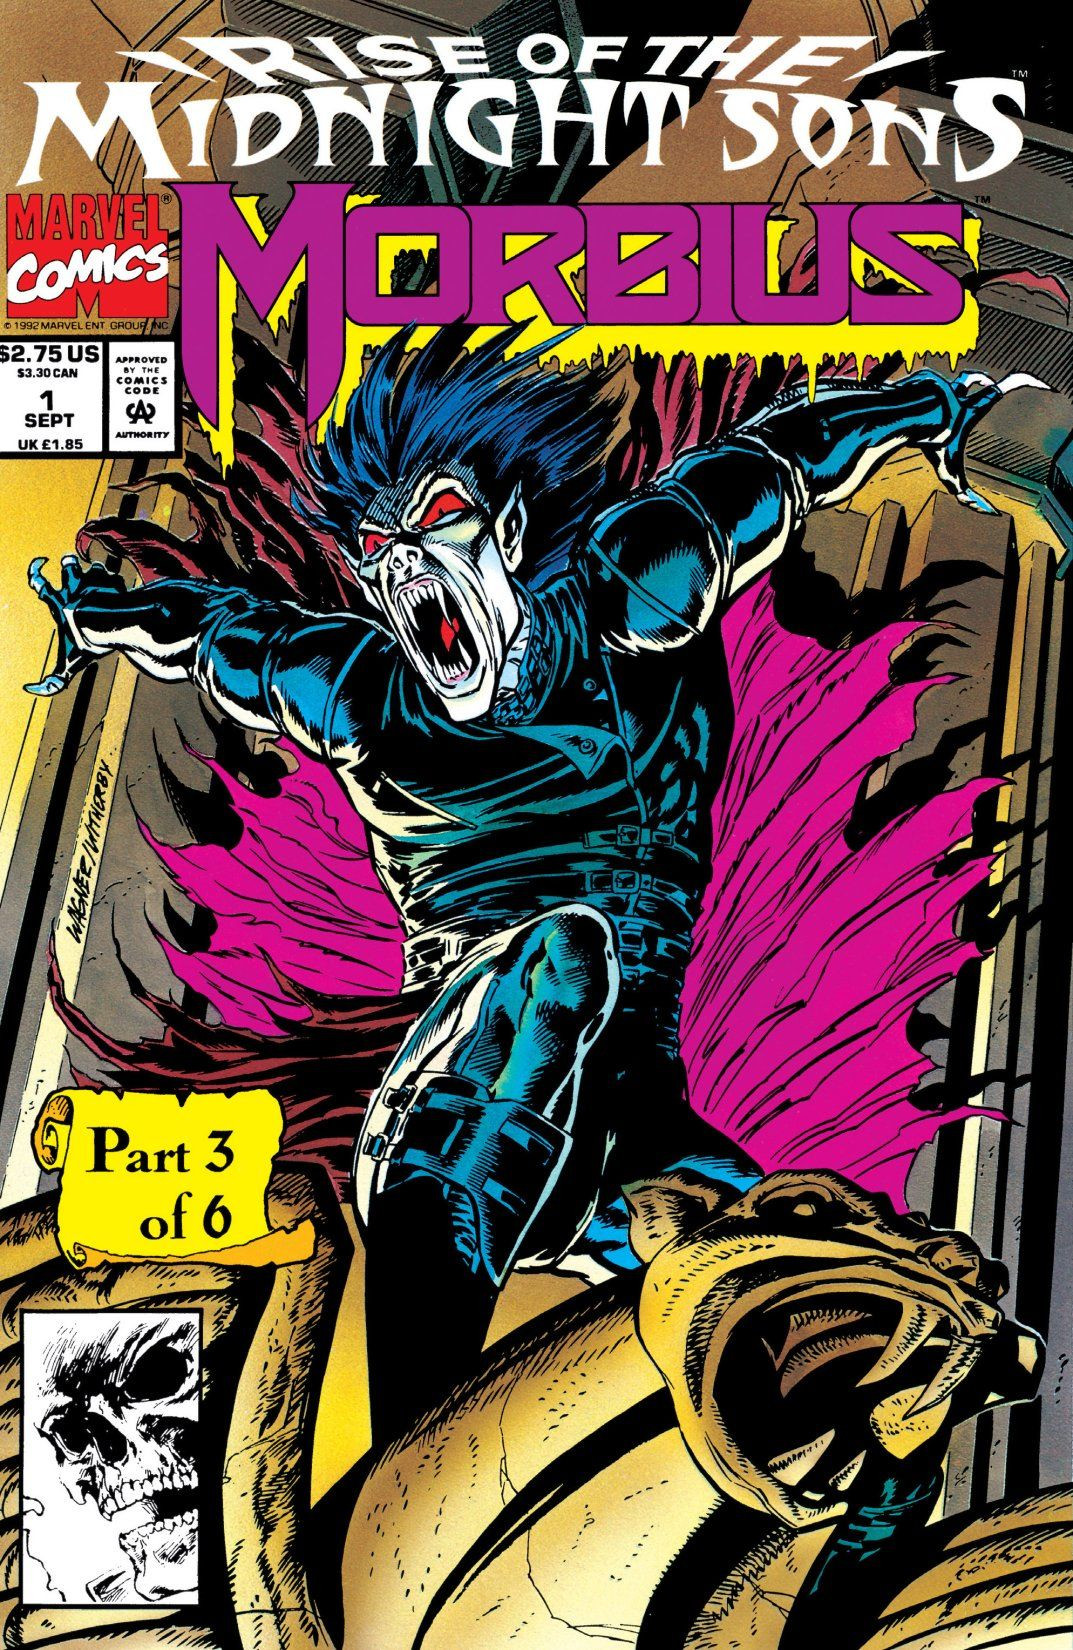 Morbius Vampire >> Morbius: The Living Vampire Vol 1 1 | Marvel Database